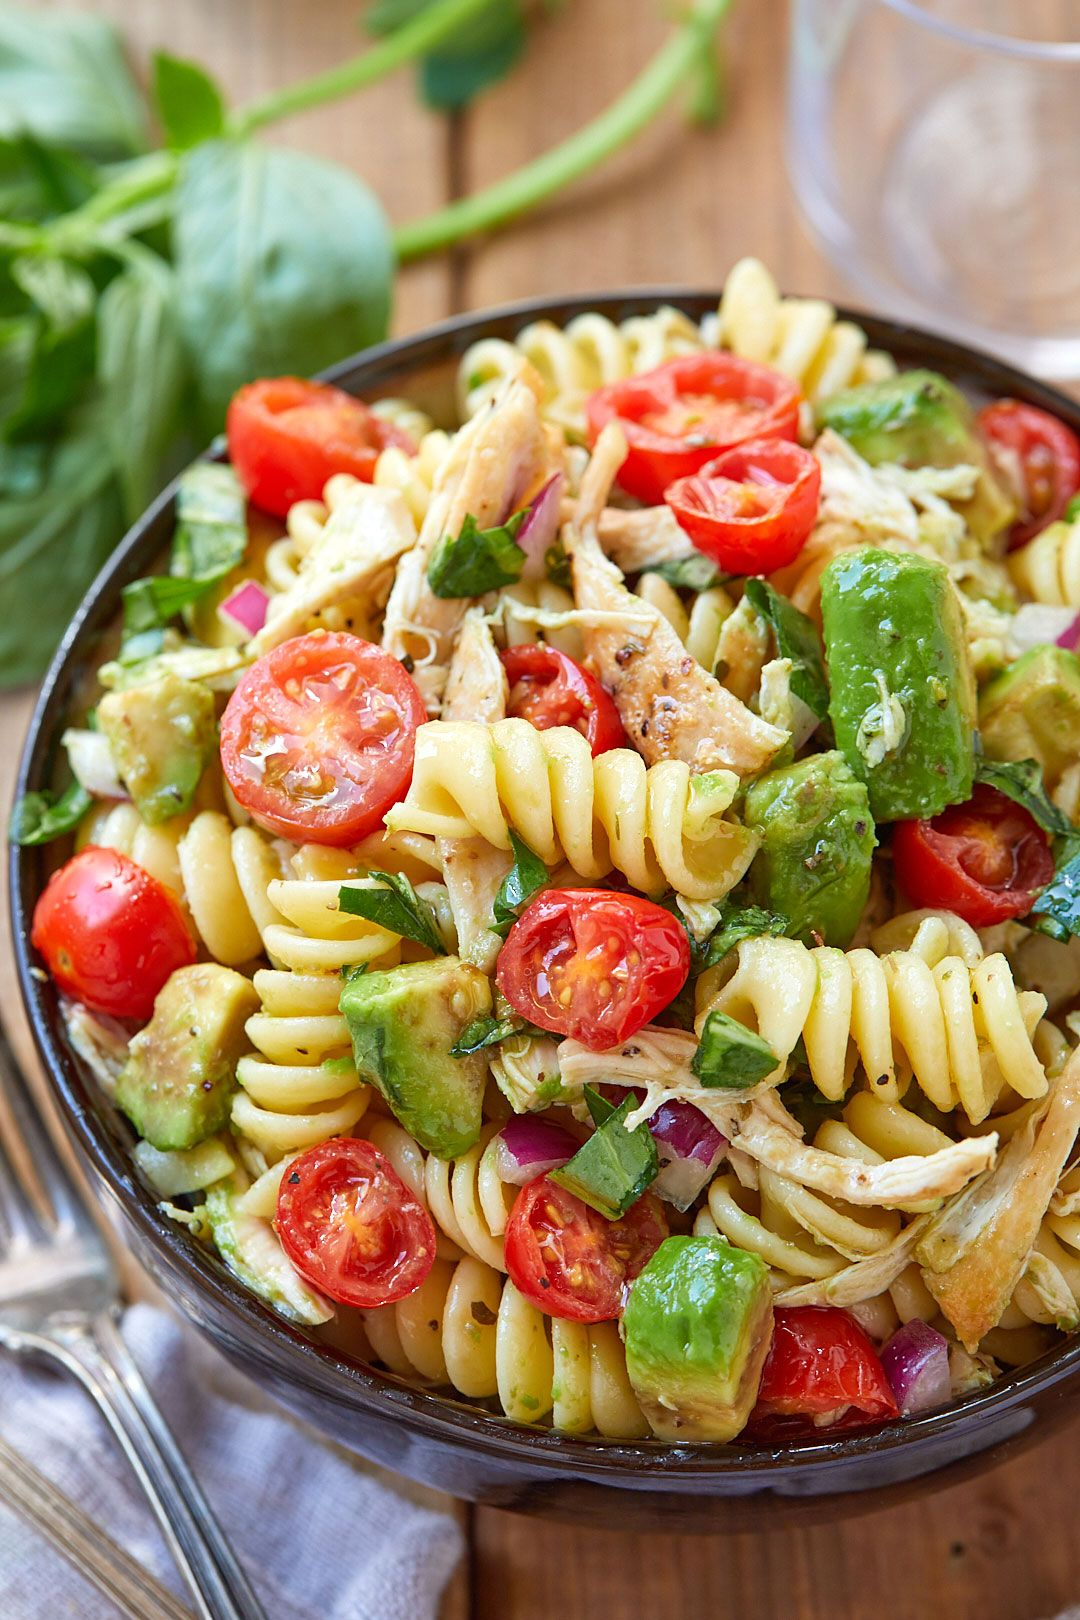 Healthy Chicken Pasta Salad with Avocado, Tomato, and Basil  #healthyfood